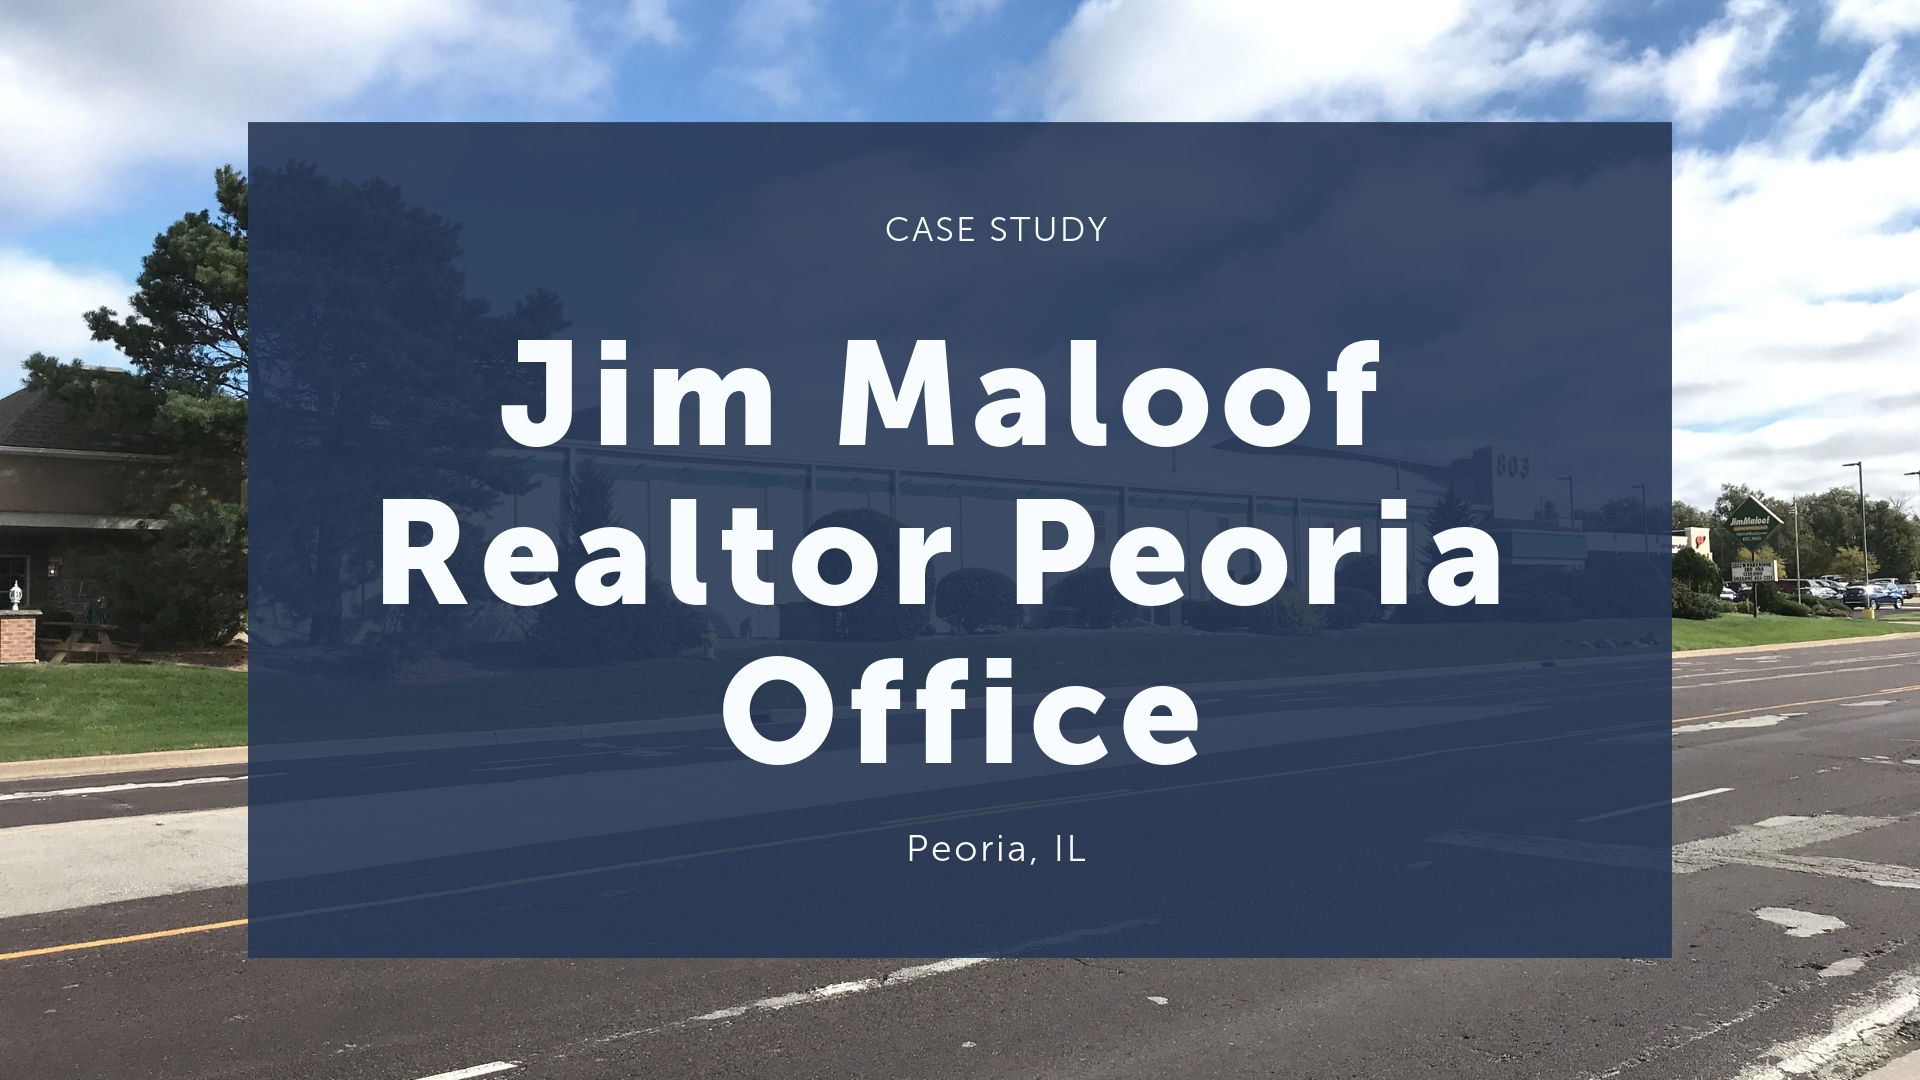 Jim Maloof Realtor Peoria Office Western Specialty